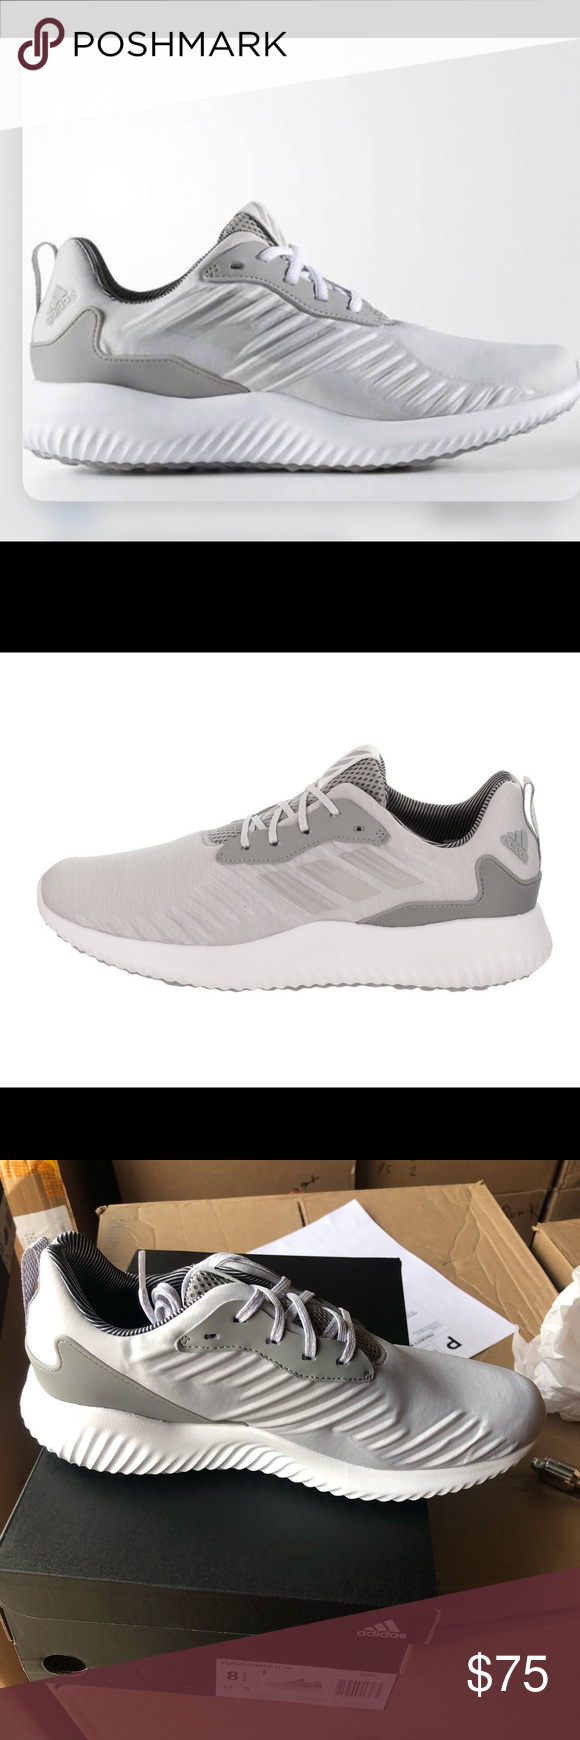 best authentic 5dae5 87e98 Adidas ALPHABOUNCE rc B42863 Adidas men s shoes adidas Shoes